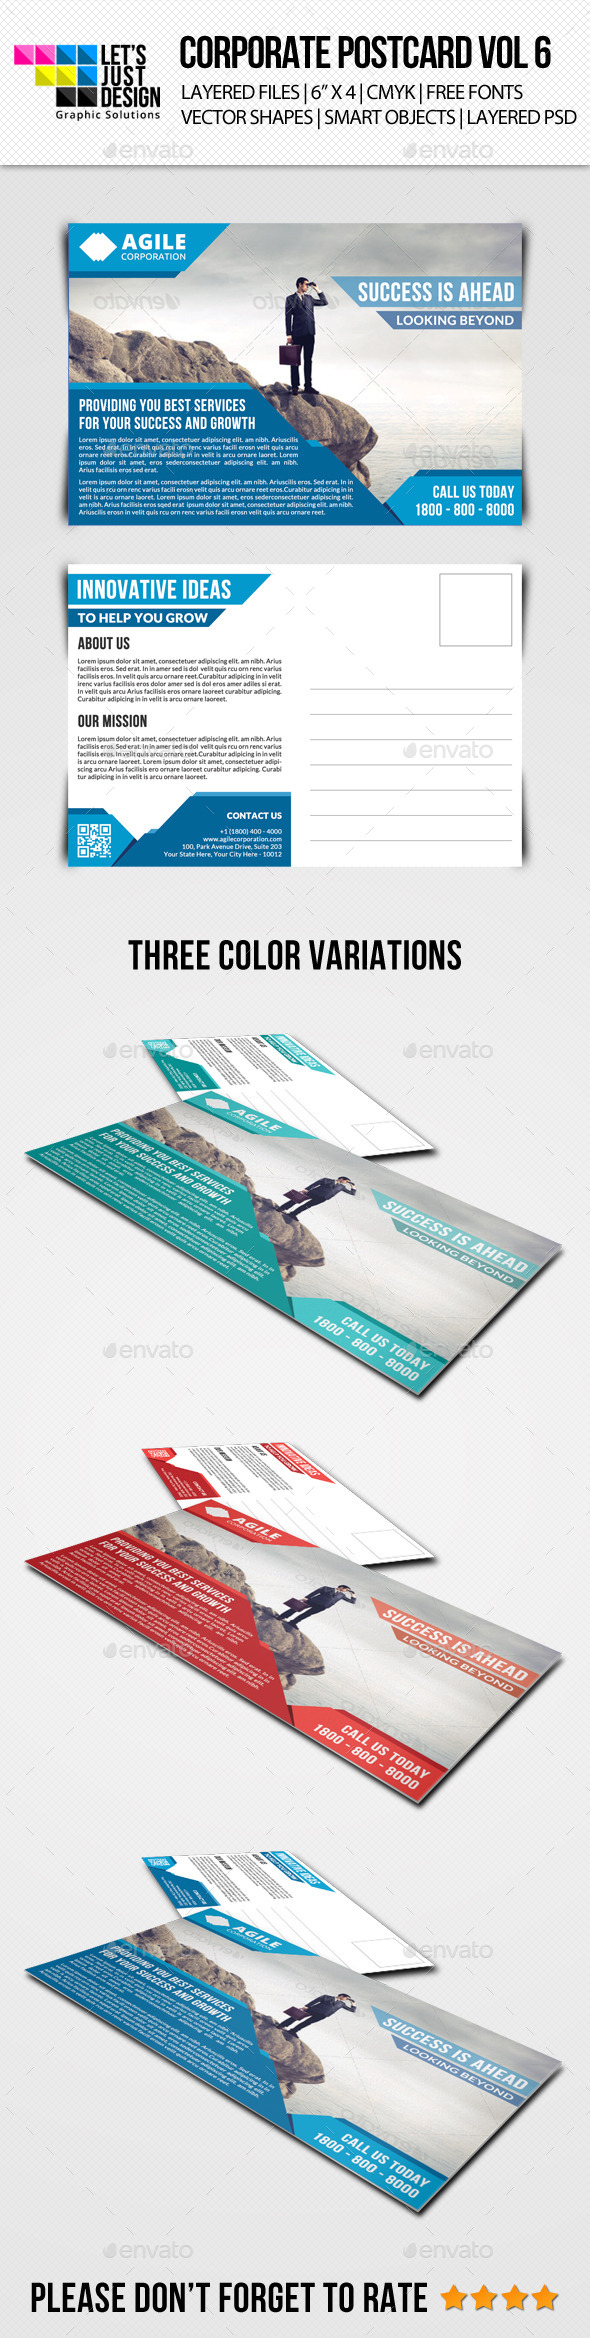 Corporate Postcard Template Vol 6 - Cards & Invites Print Templates